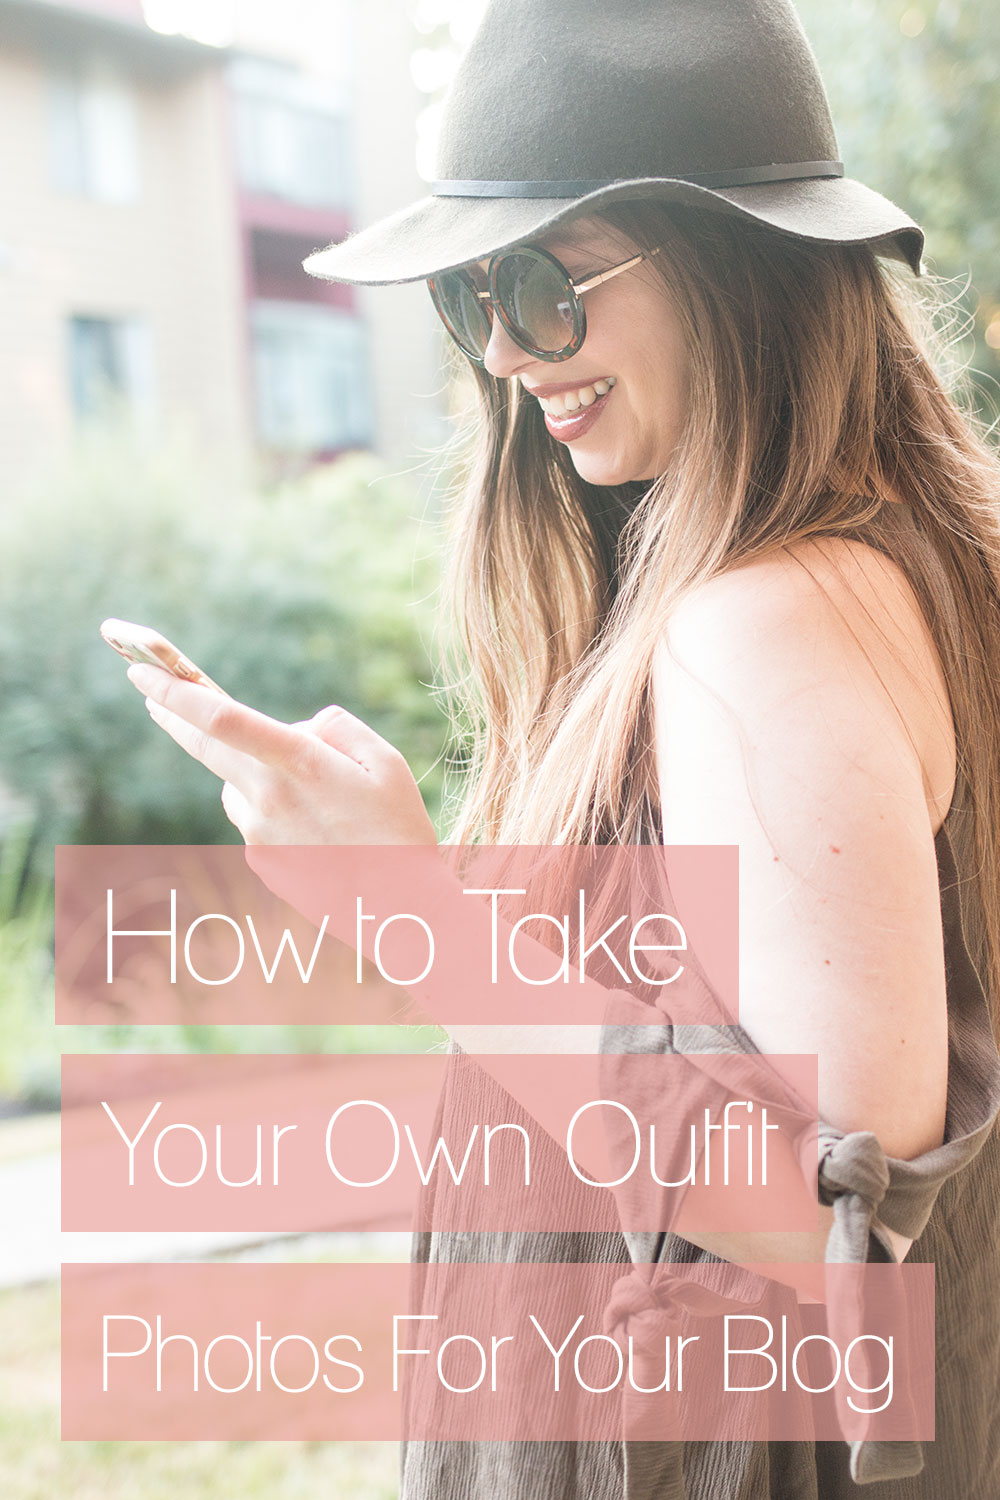 How to Take Your Own Outfit Photos for Your Blog: The complete guide to the equipment you need, camera settings, posing tricks, and tips on where and when to shoot! via @hellorigby